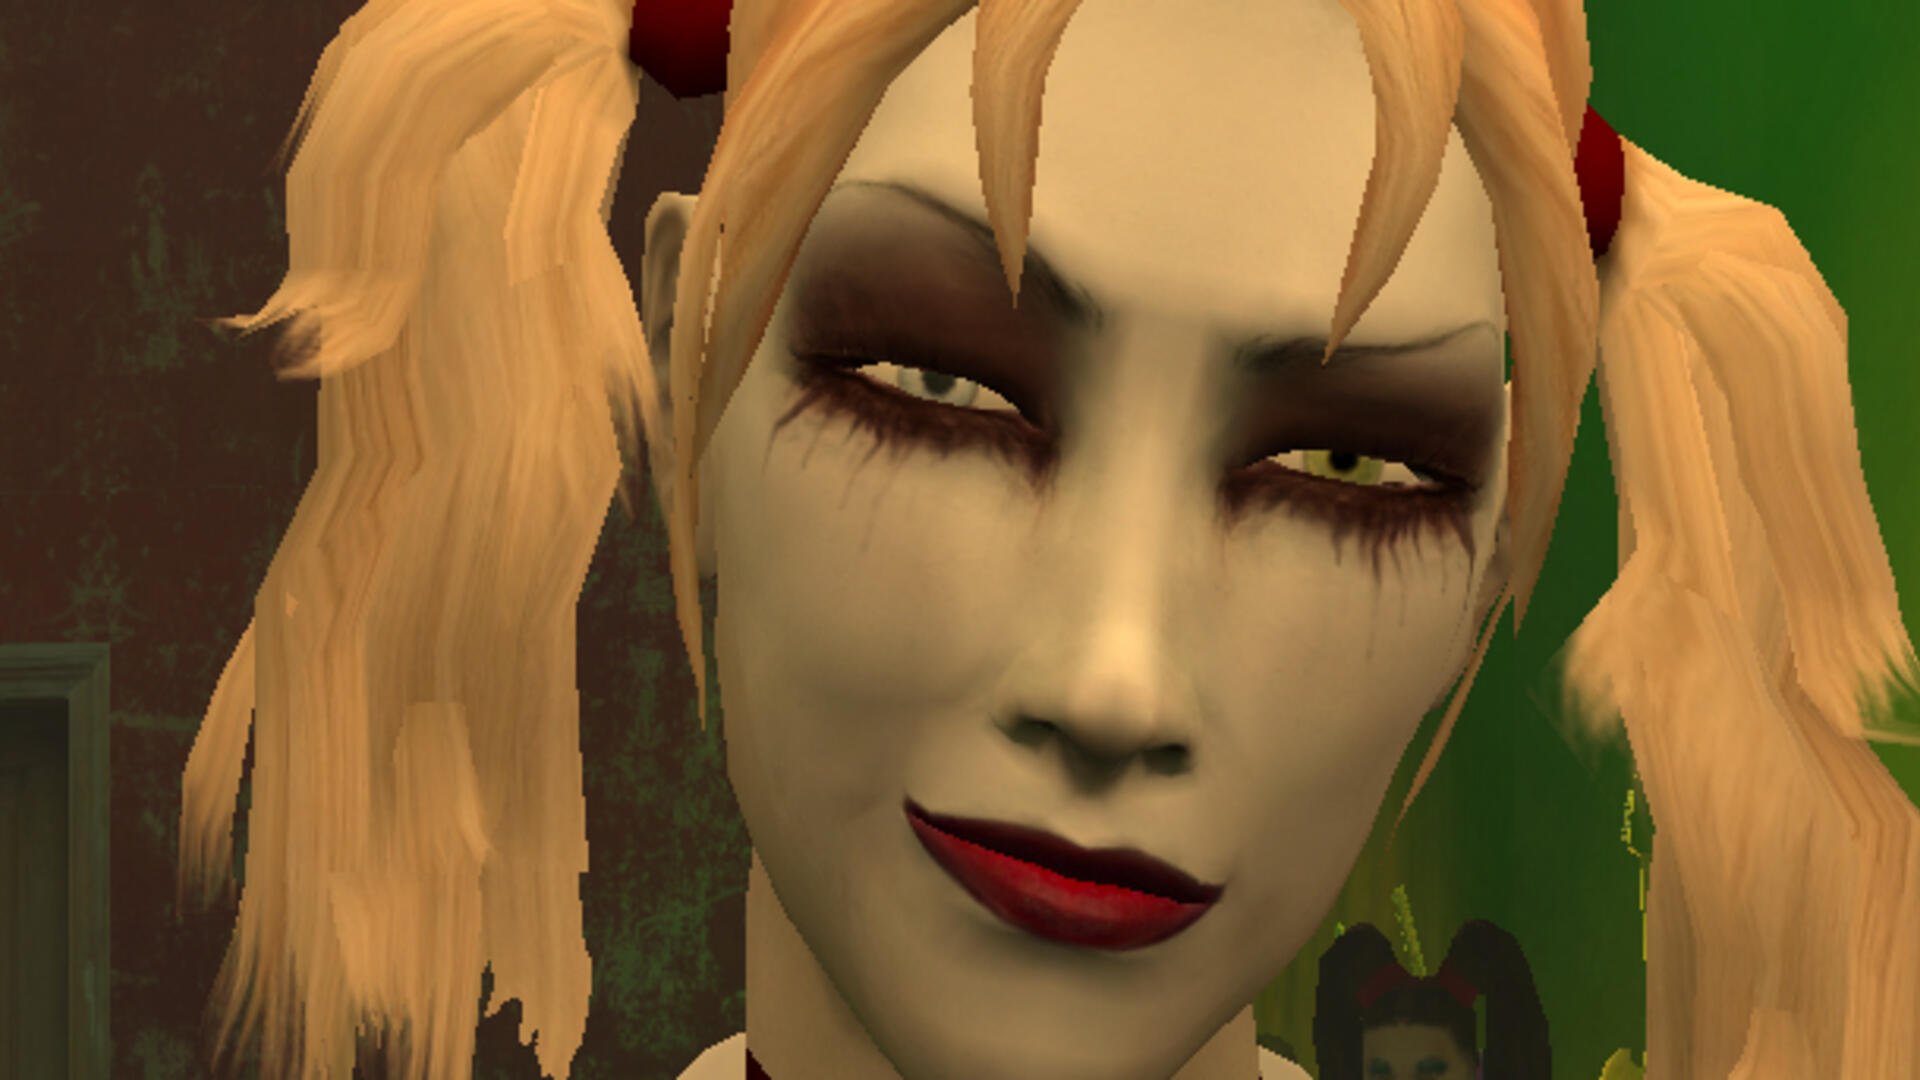 The Top 25 RPGs of All Time #22: Vampire: The Masquerade - Bloodlines